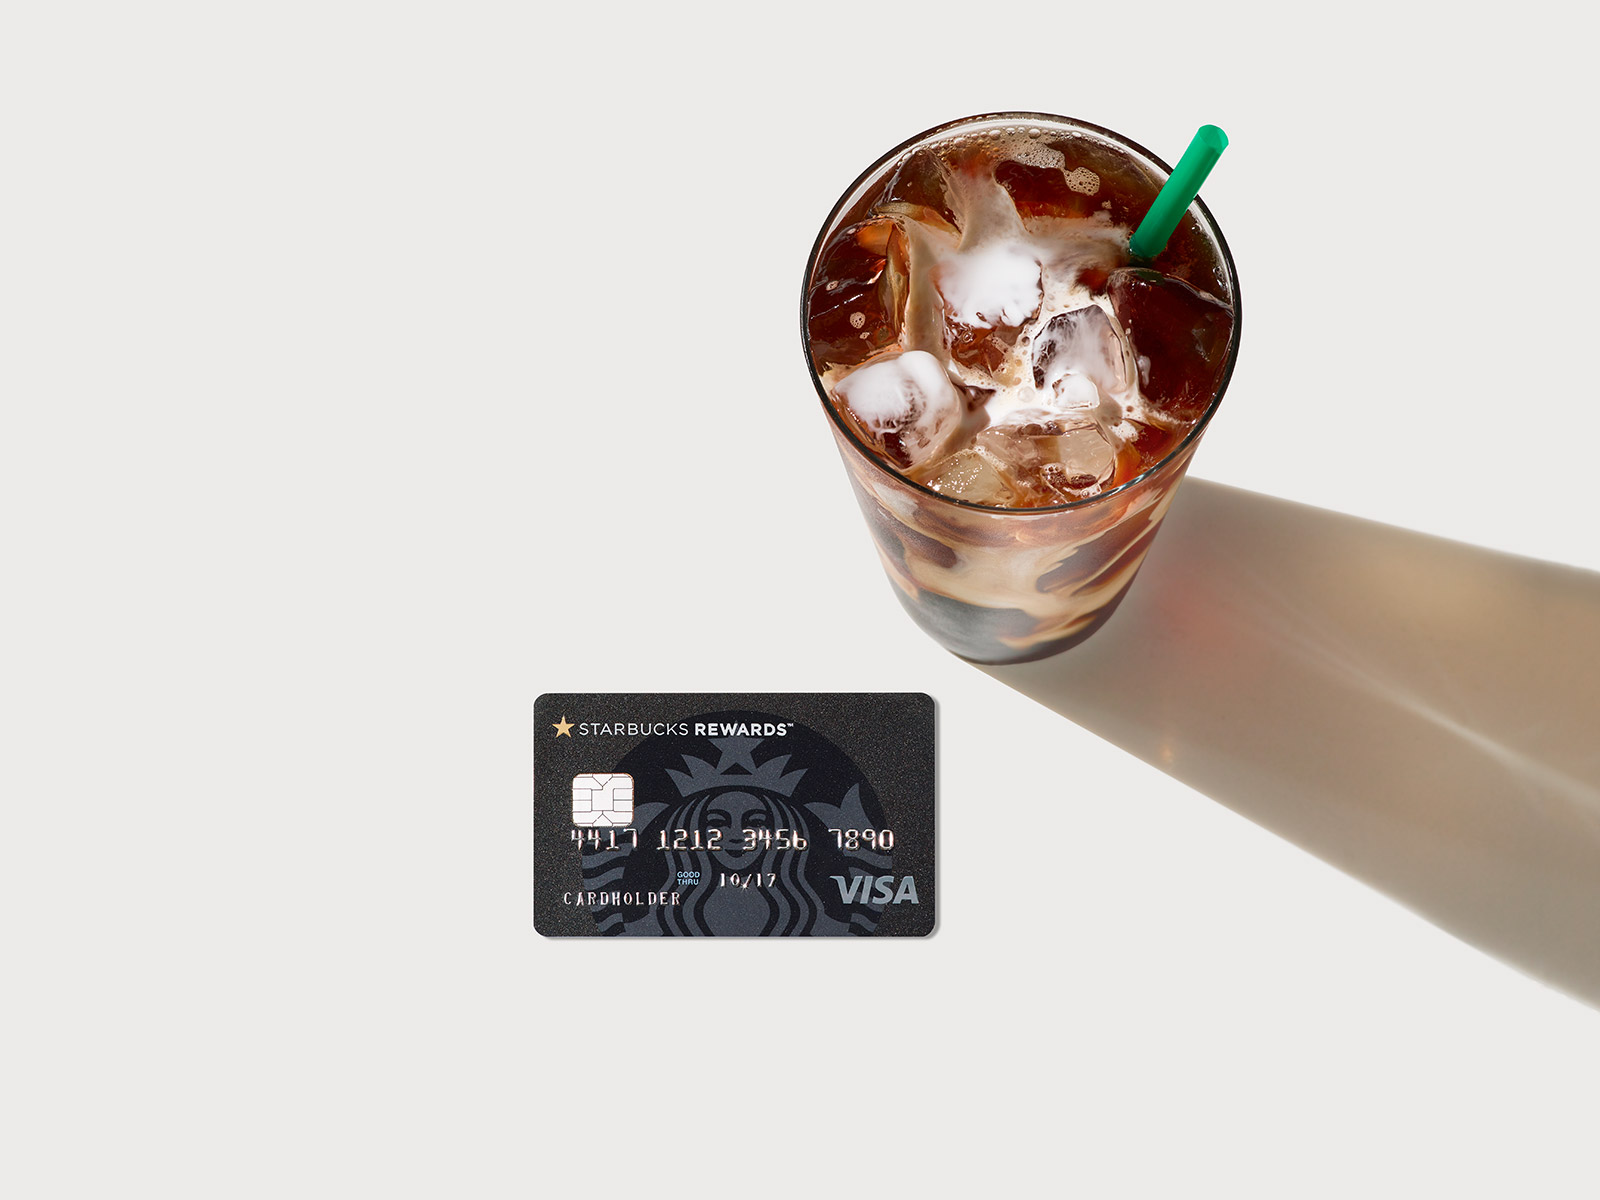 Starbucks Hopes New Credit Card Will Boost Loyalty, Stimulate Sales